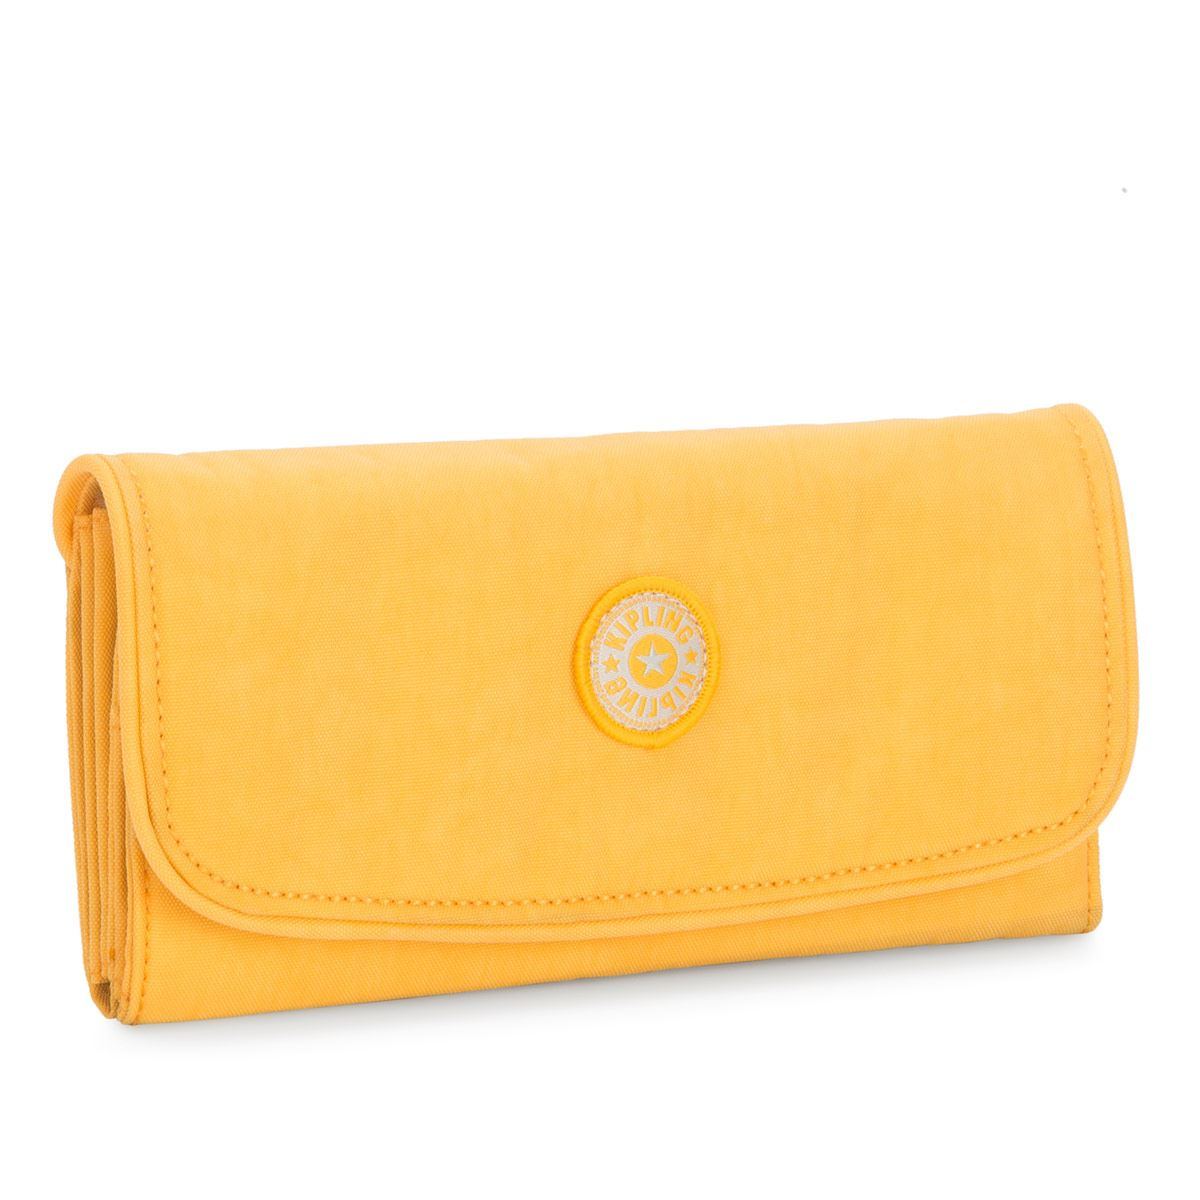 Cartera de broche Kipling money amarilla Para Dama